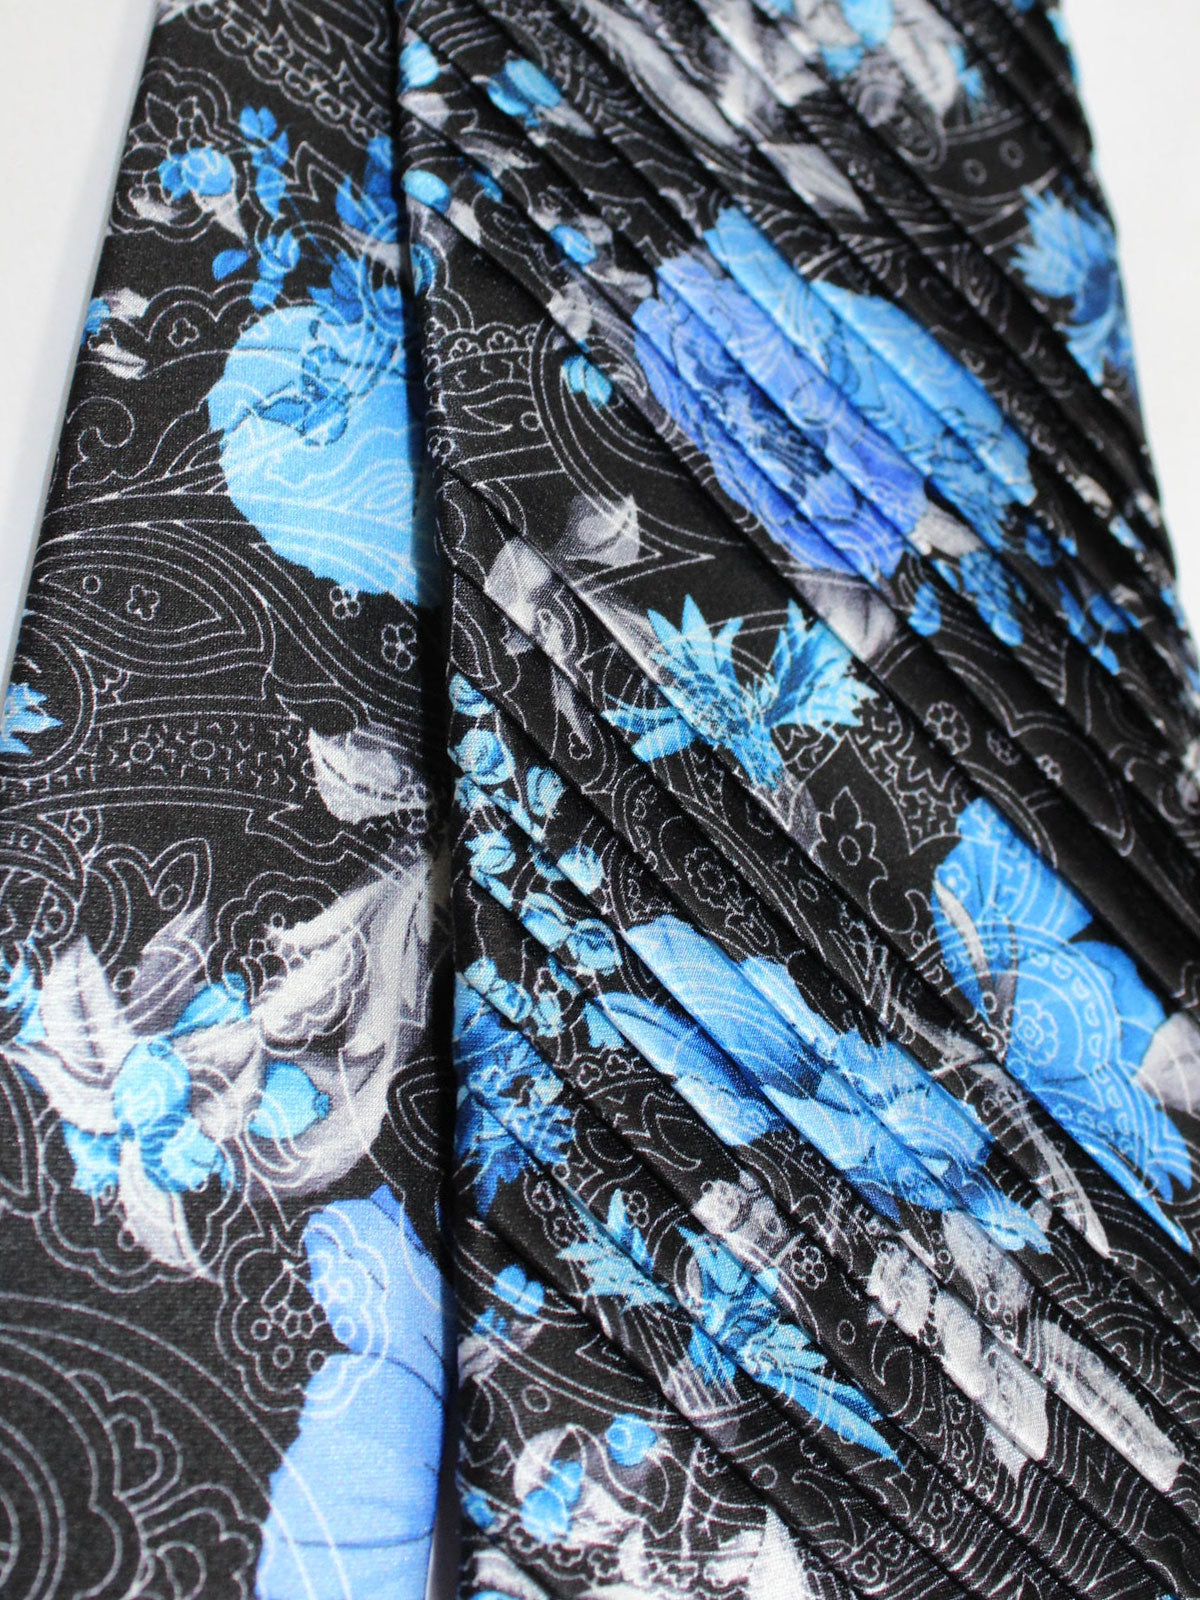 Vitaliano Pancaldi PLEATED SILK Tie Black Gray Blue Floral Ornamental